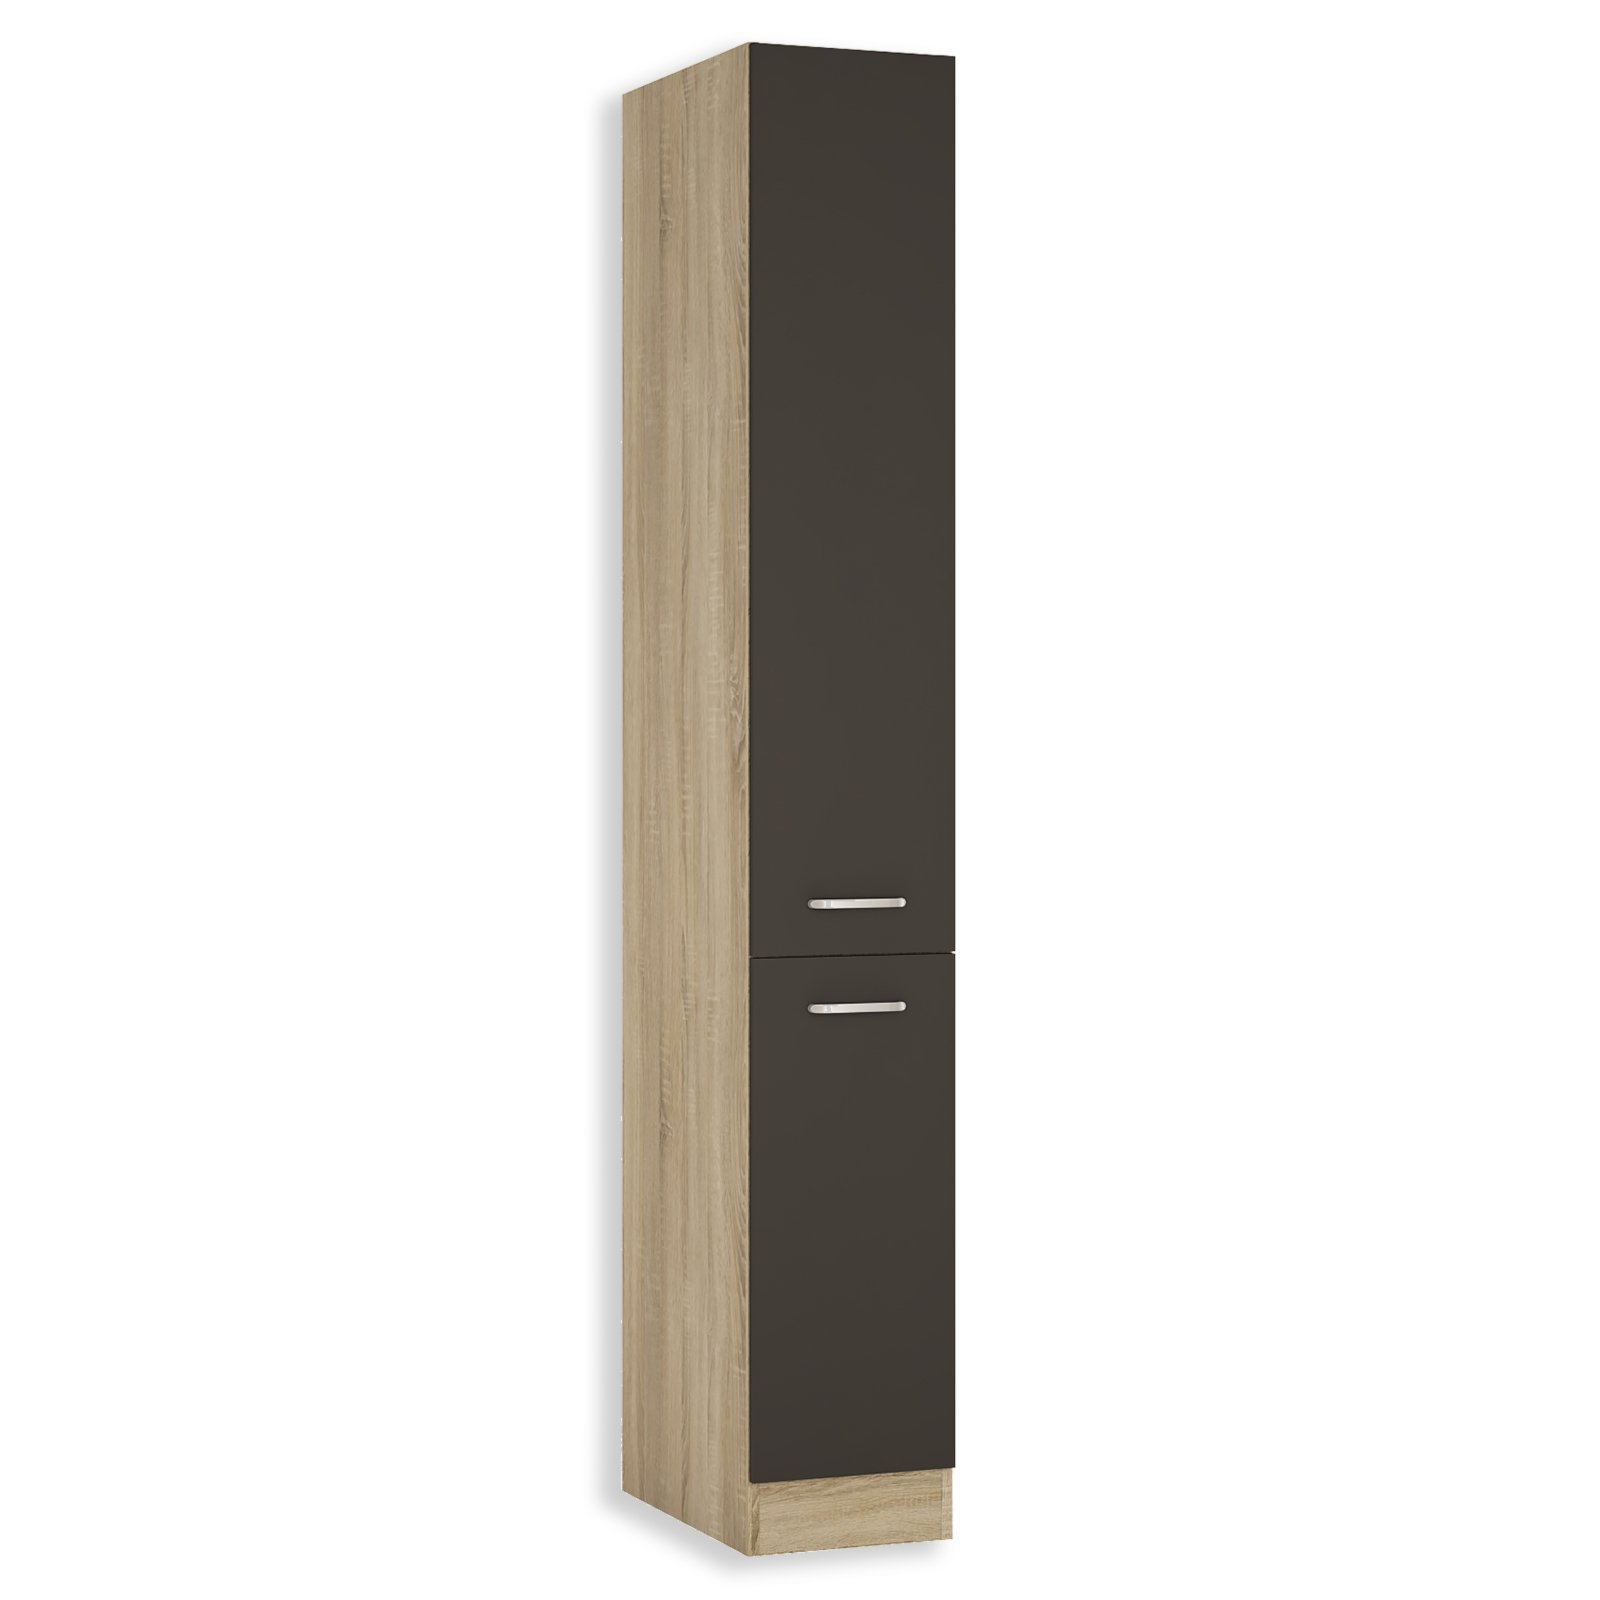 apothekerschrank 30 cm breit gh74 hitoiro. Black Bedroom Furniture Sets. Home Design Ideas